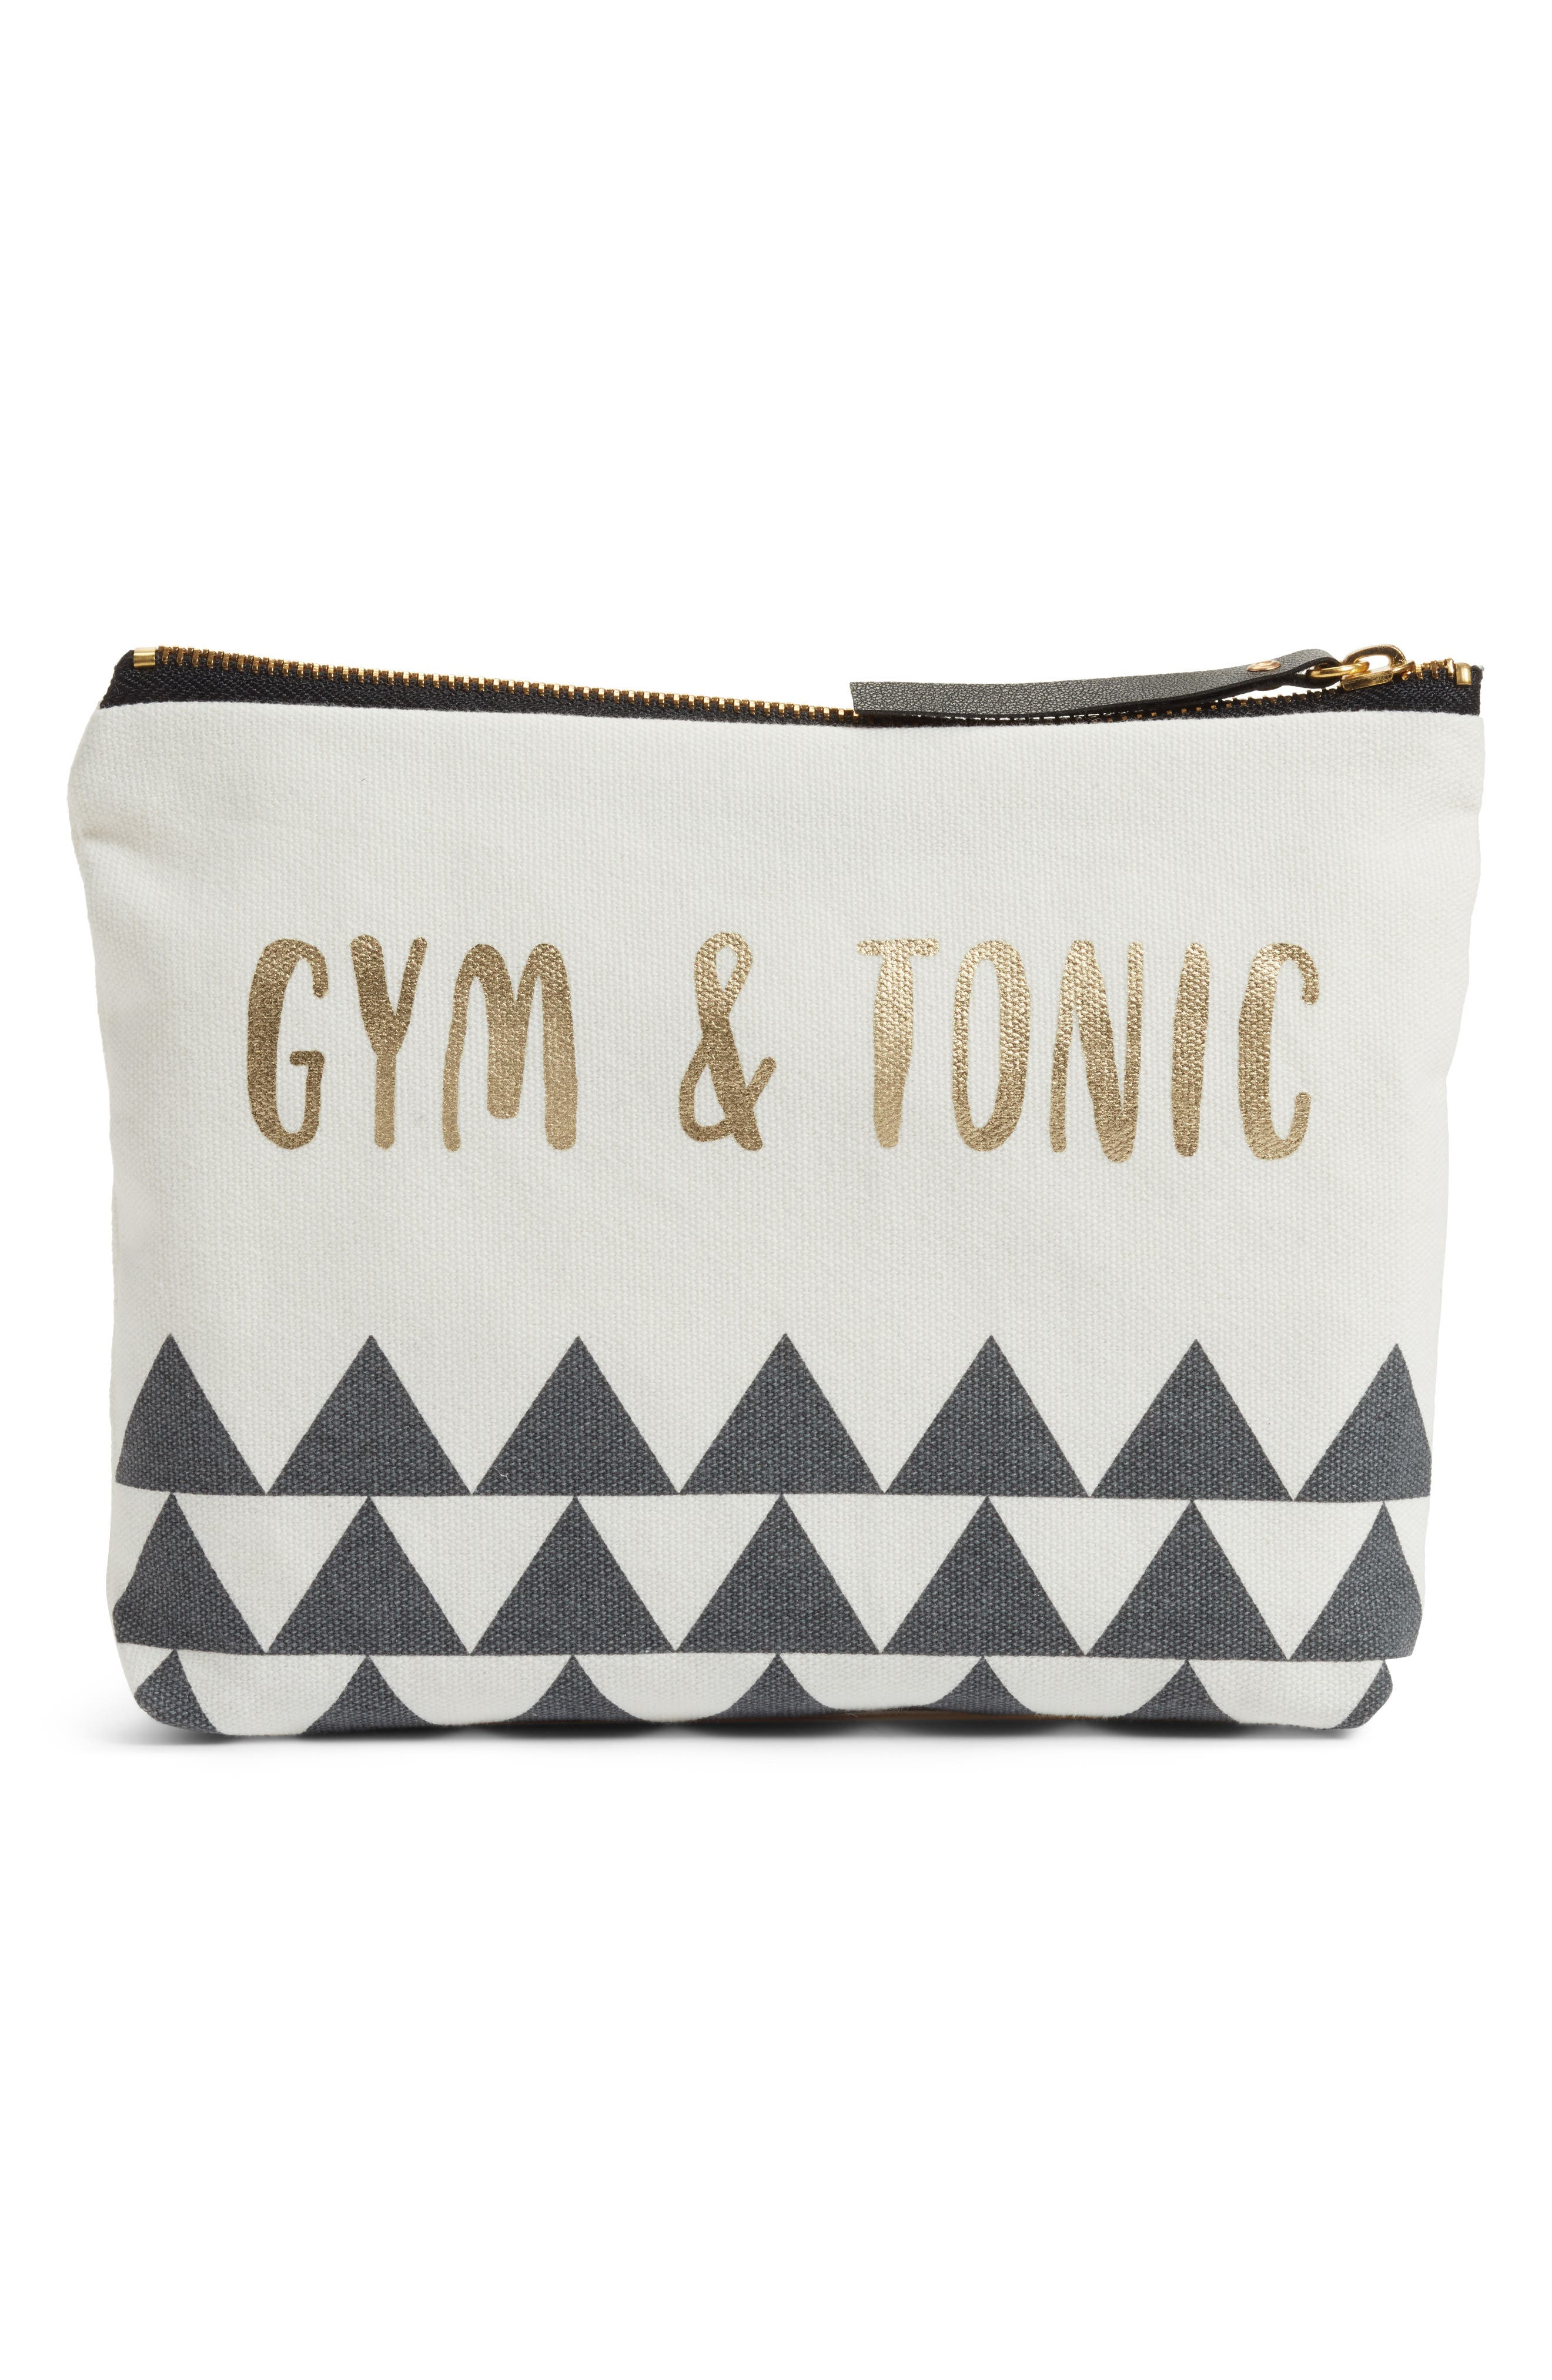 Main Image - Levtex Gym & Tonic Zip Pouch